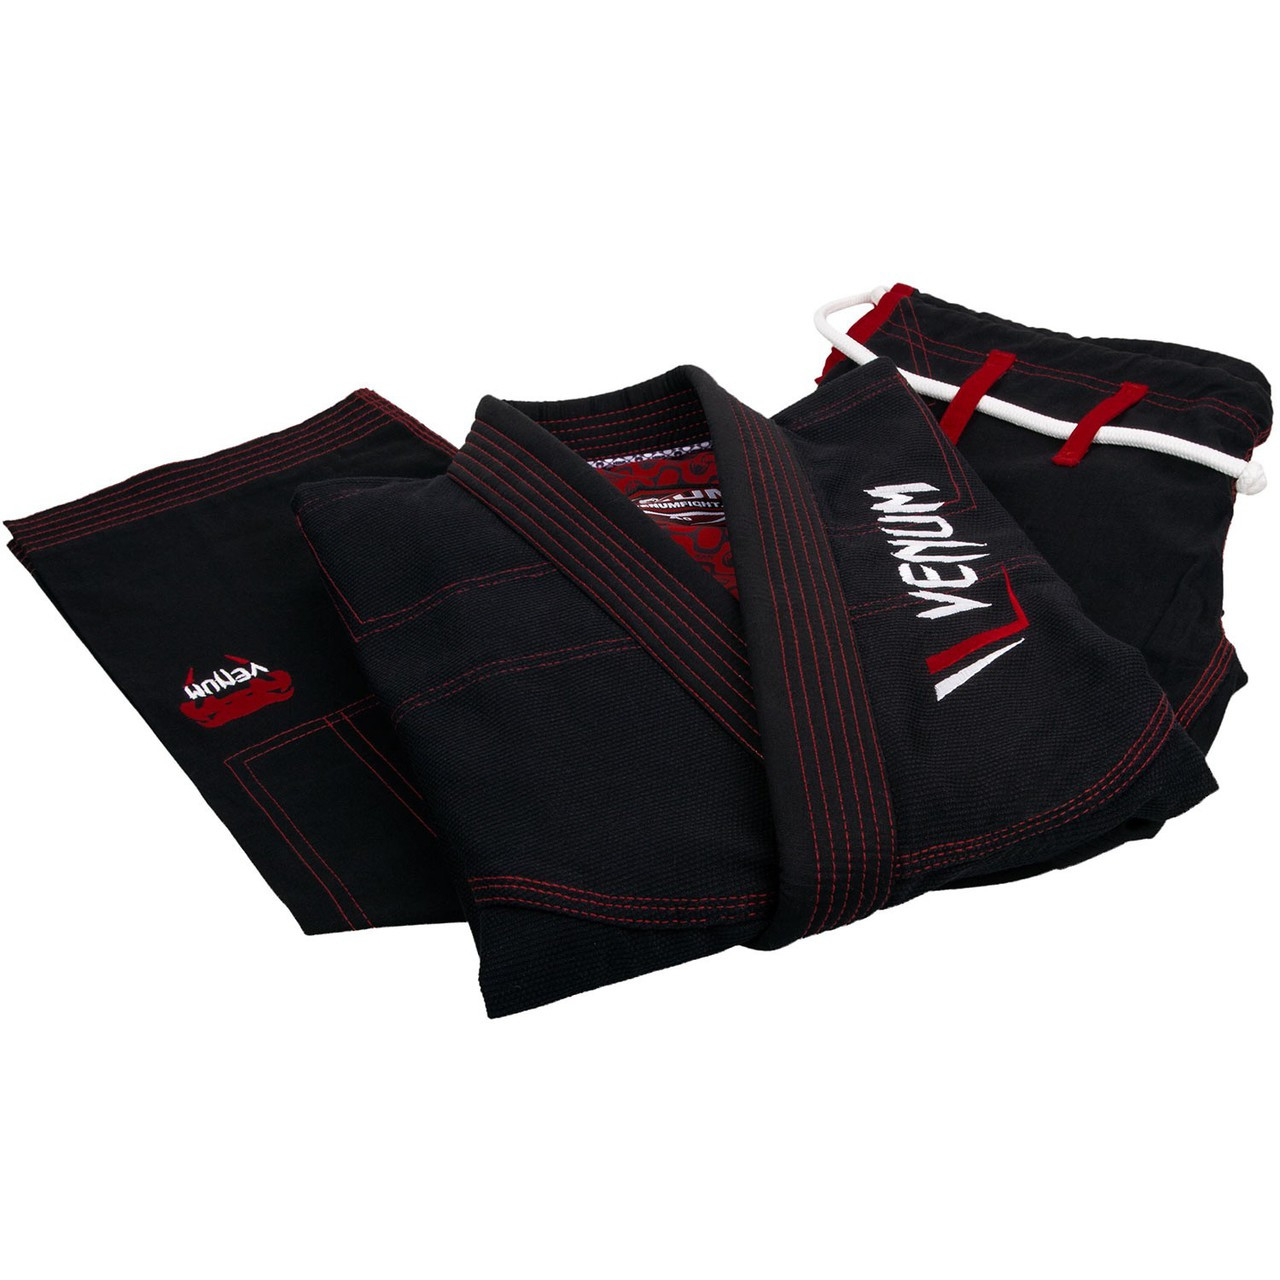 Folded gi and pants Venum Elite Light BJJ GI in Black is now available at www.thejiujitsushop.com  Enjoy Free Shipping from The Jiu Jitsu Shop today!